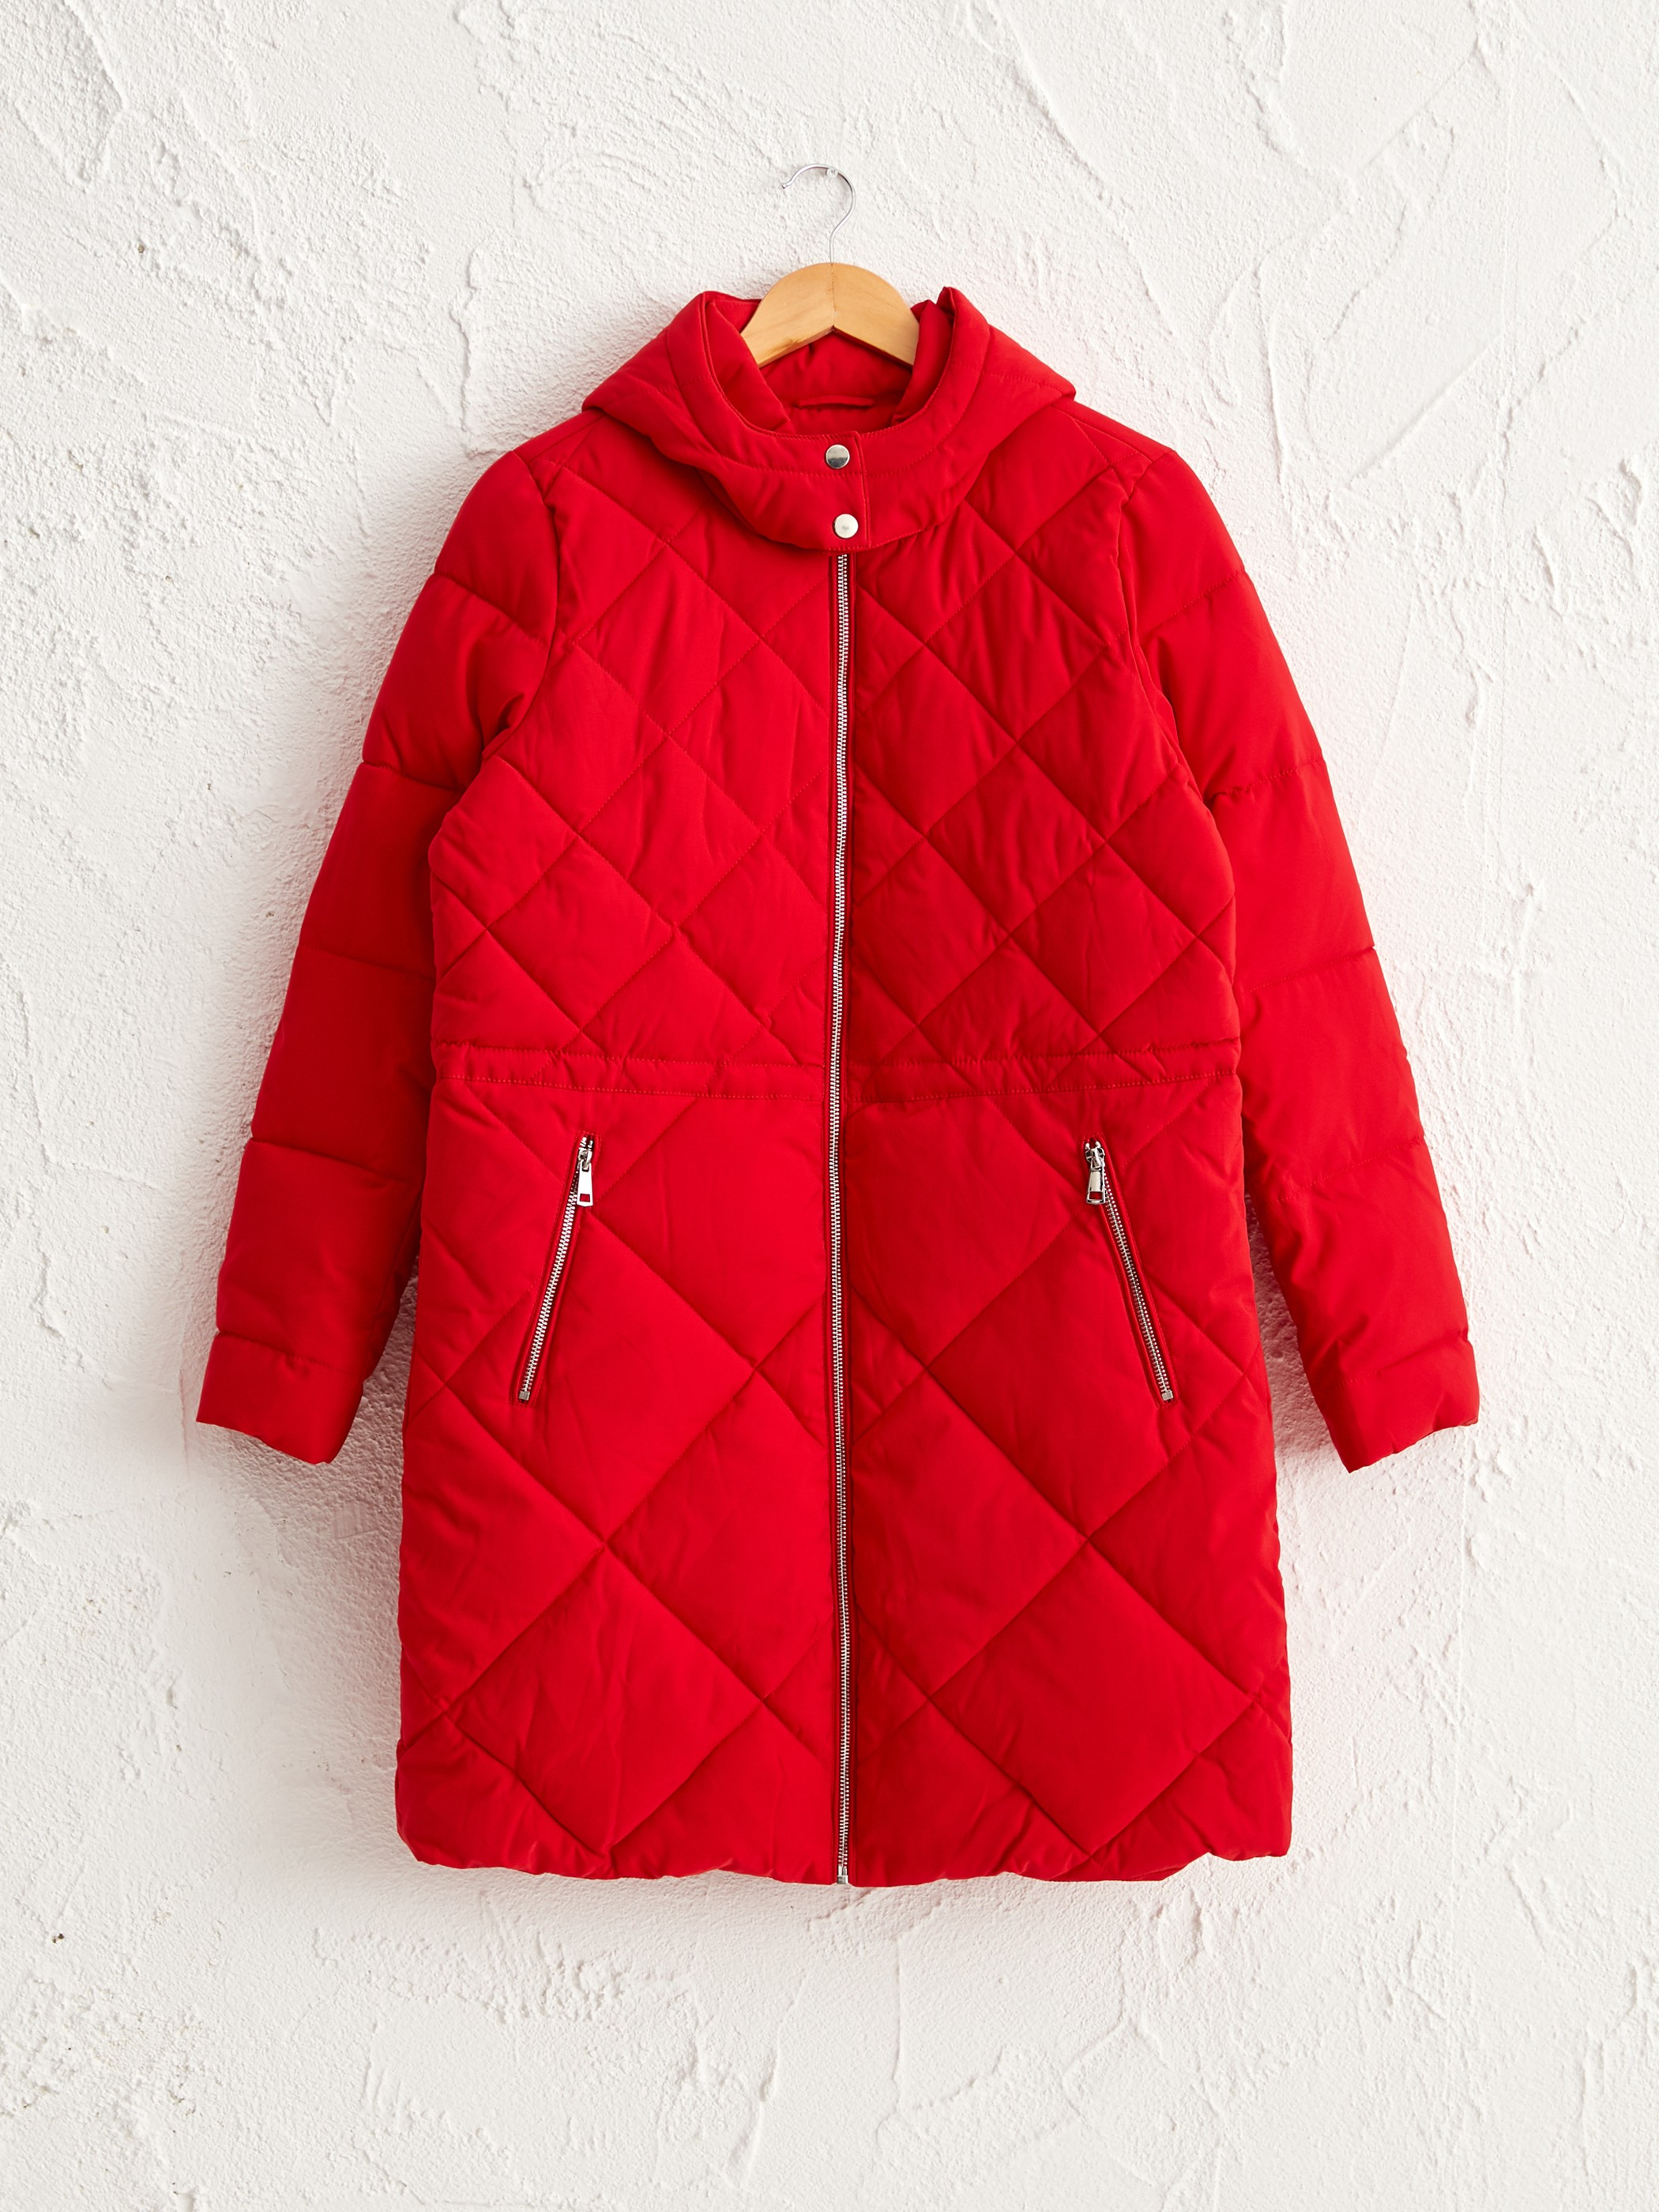 RED - Quilted Figured Short Coat with Hood - 0W1772Z8